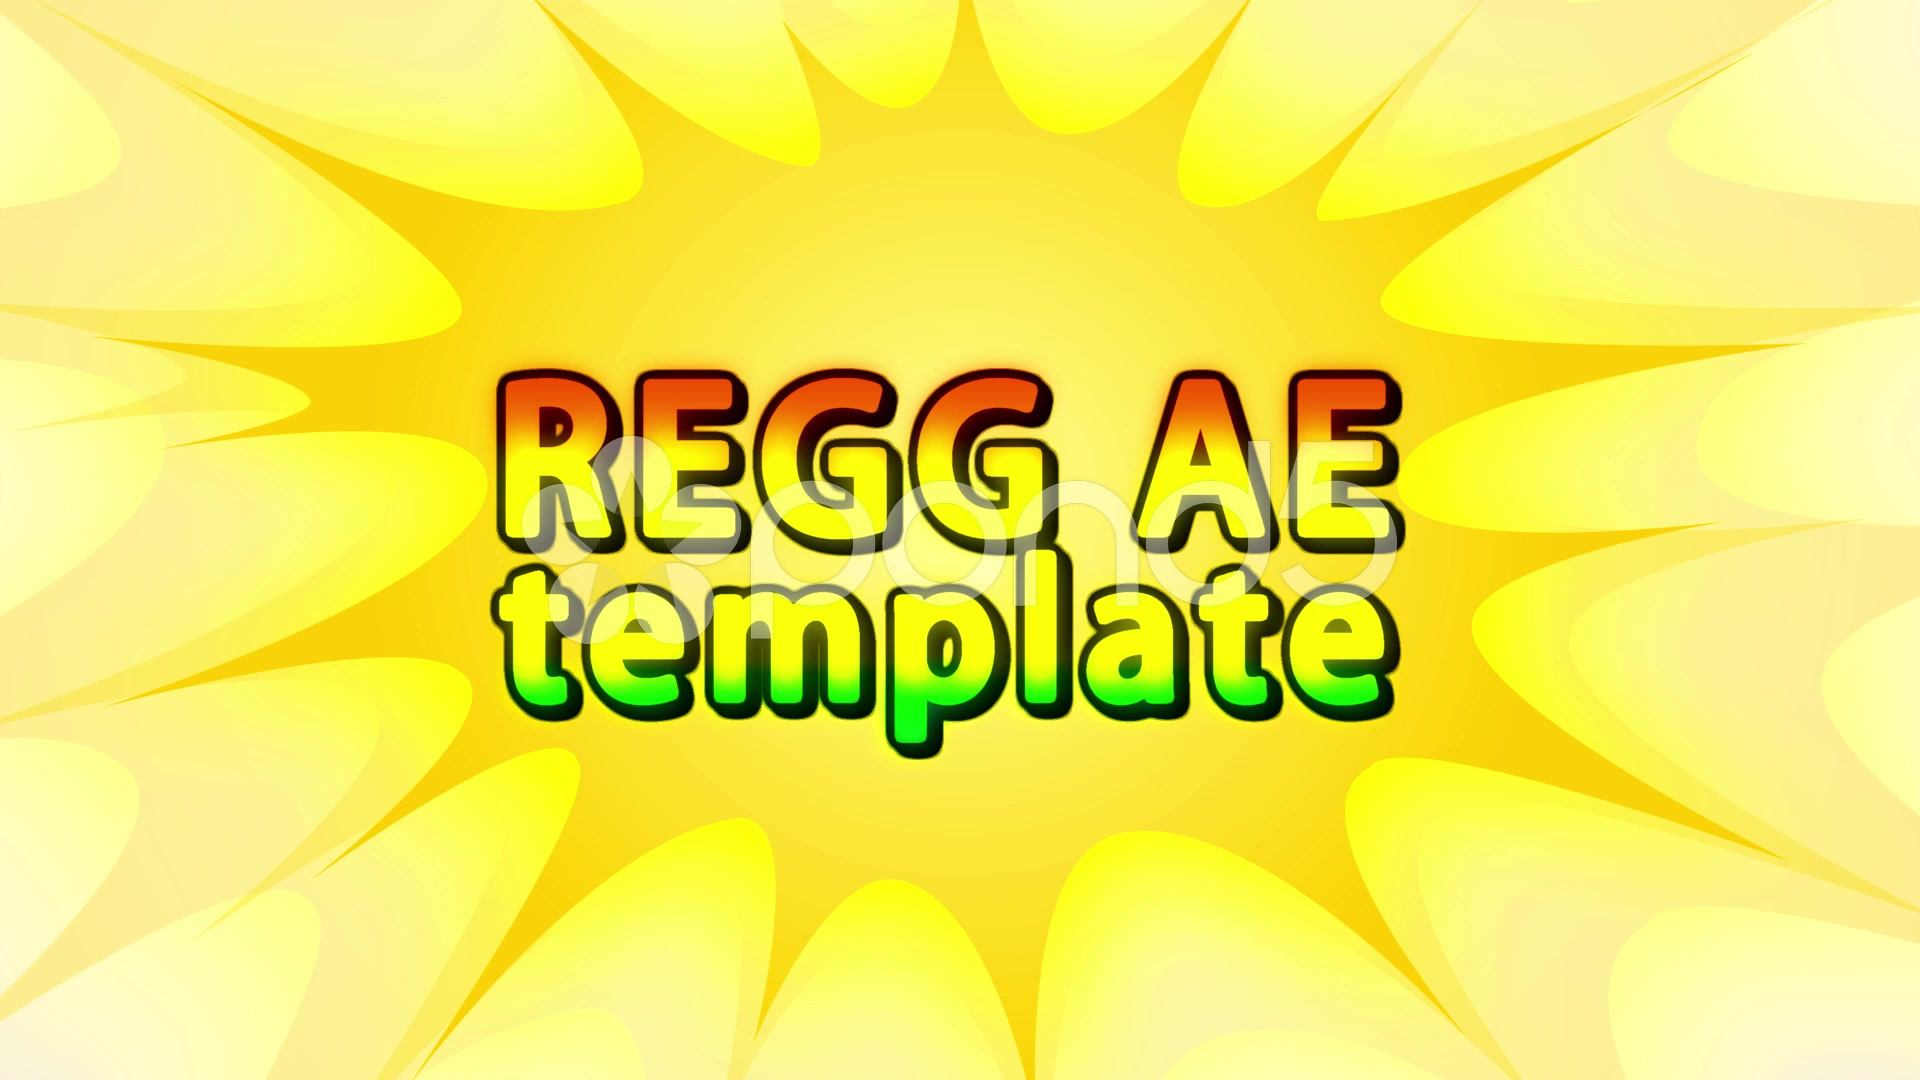 After Effects Project - Pond5 Reggae dub 52345567